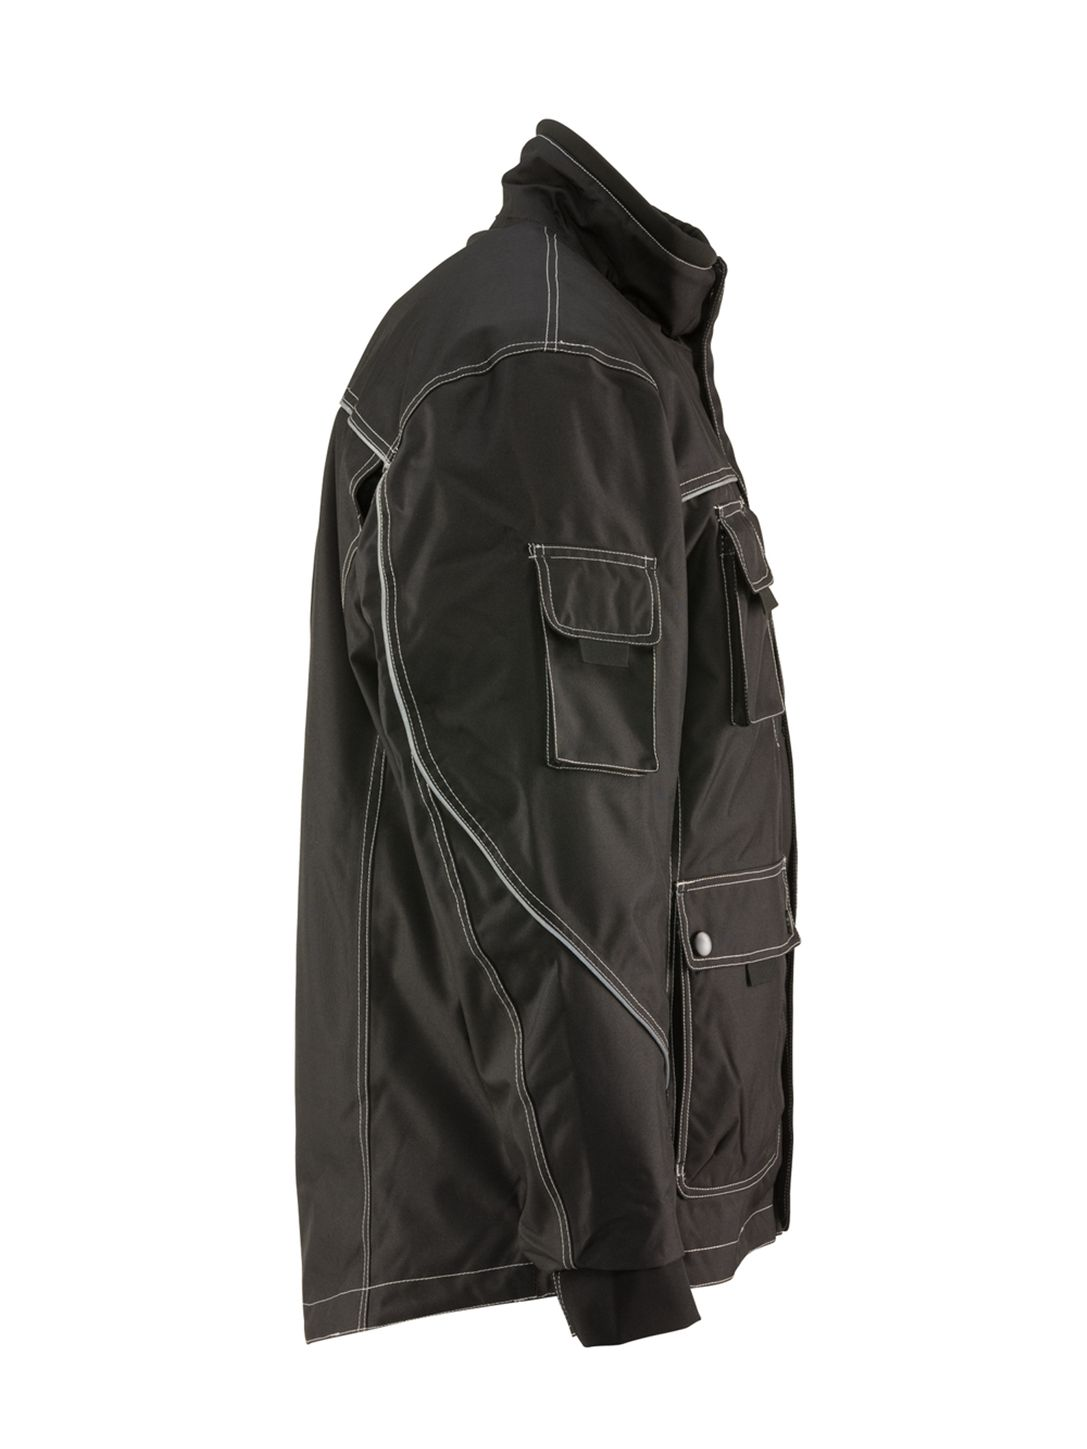 refrigiwear-8042-ergoforce-jacket-side-view.jpg